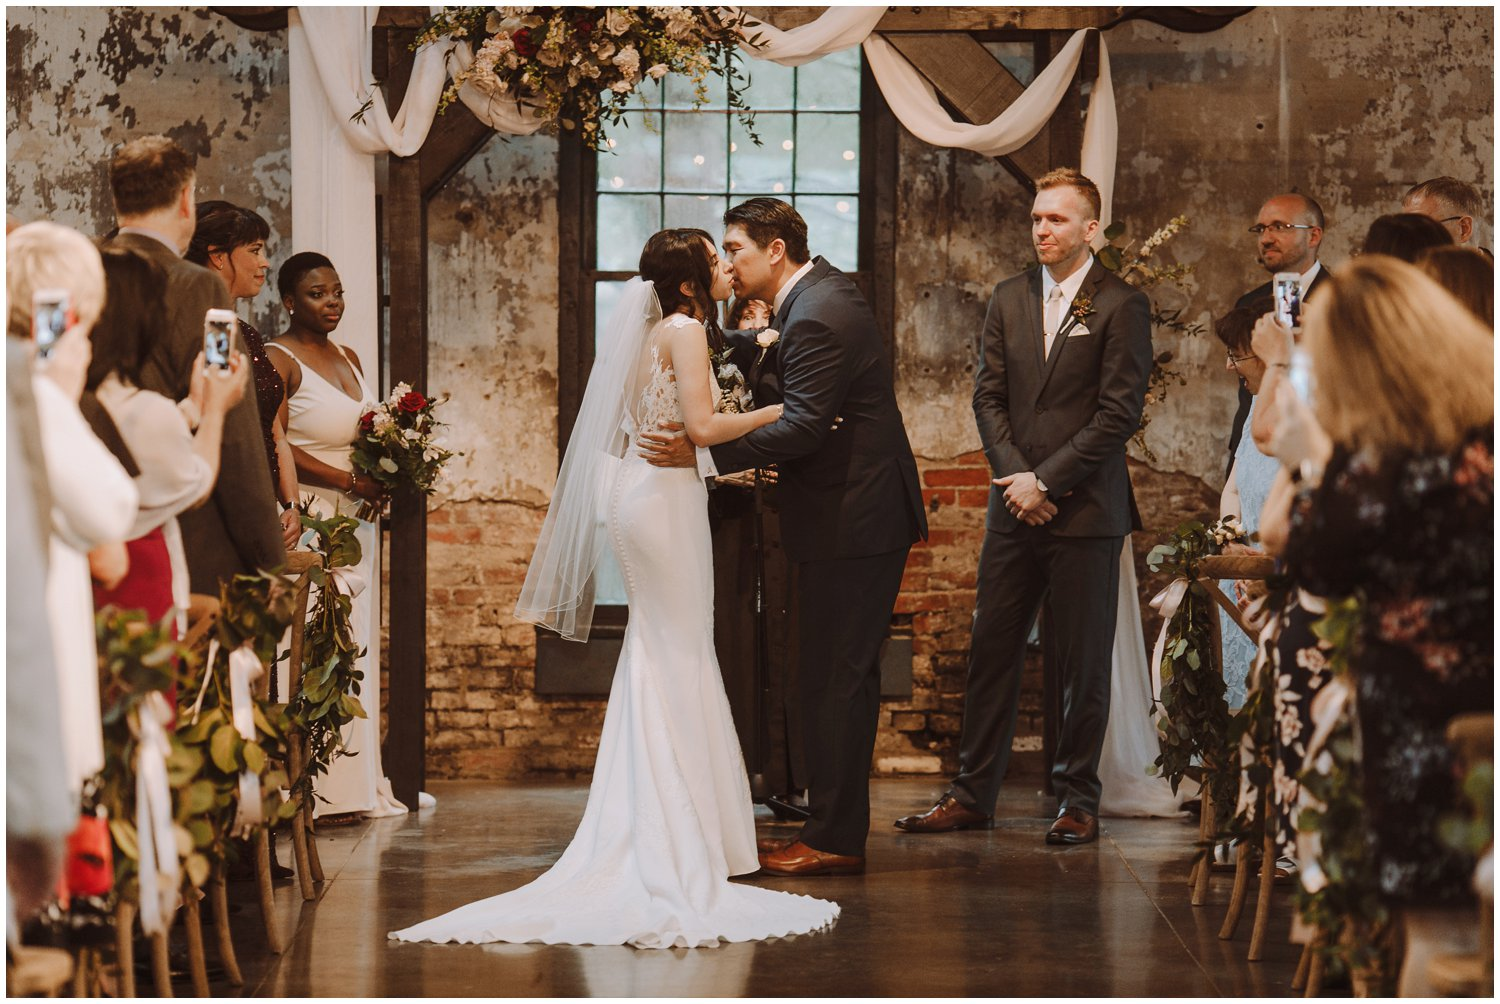 Baltimore wedding photographer | Mt Washington Mill Dye House wedding ceremony | Baltimore Maryland wedding